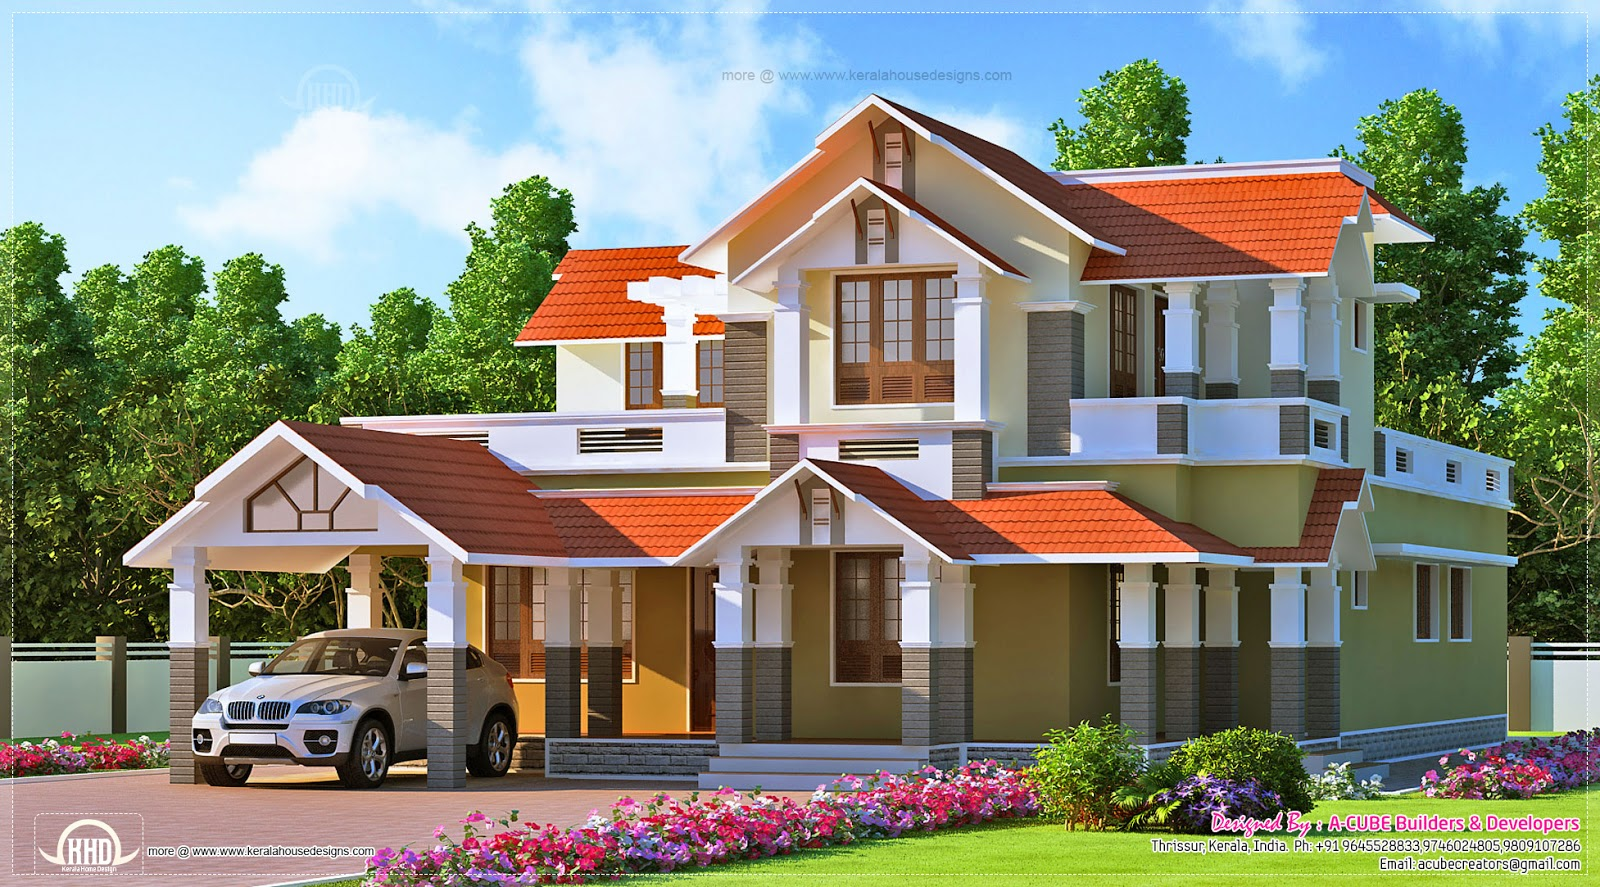 Kerala style dream home design in 2900 house My home plan